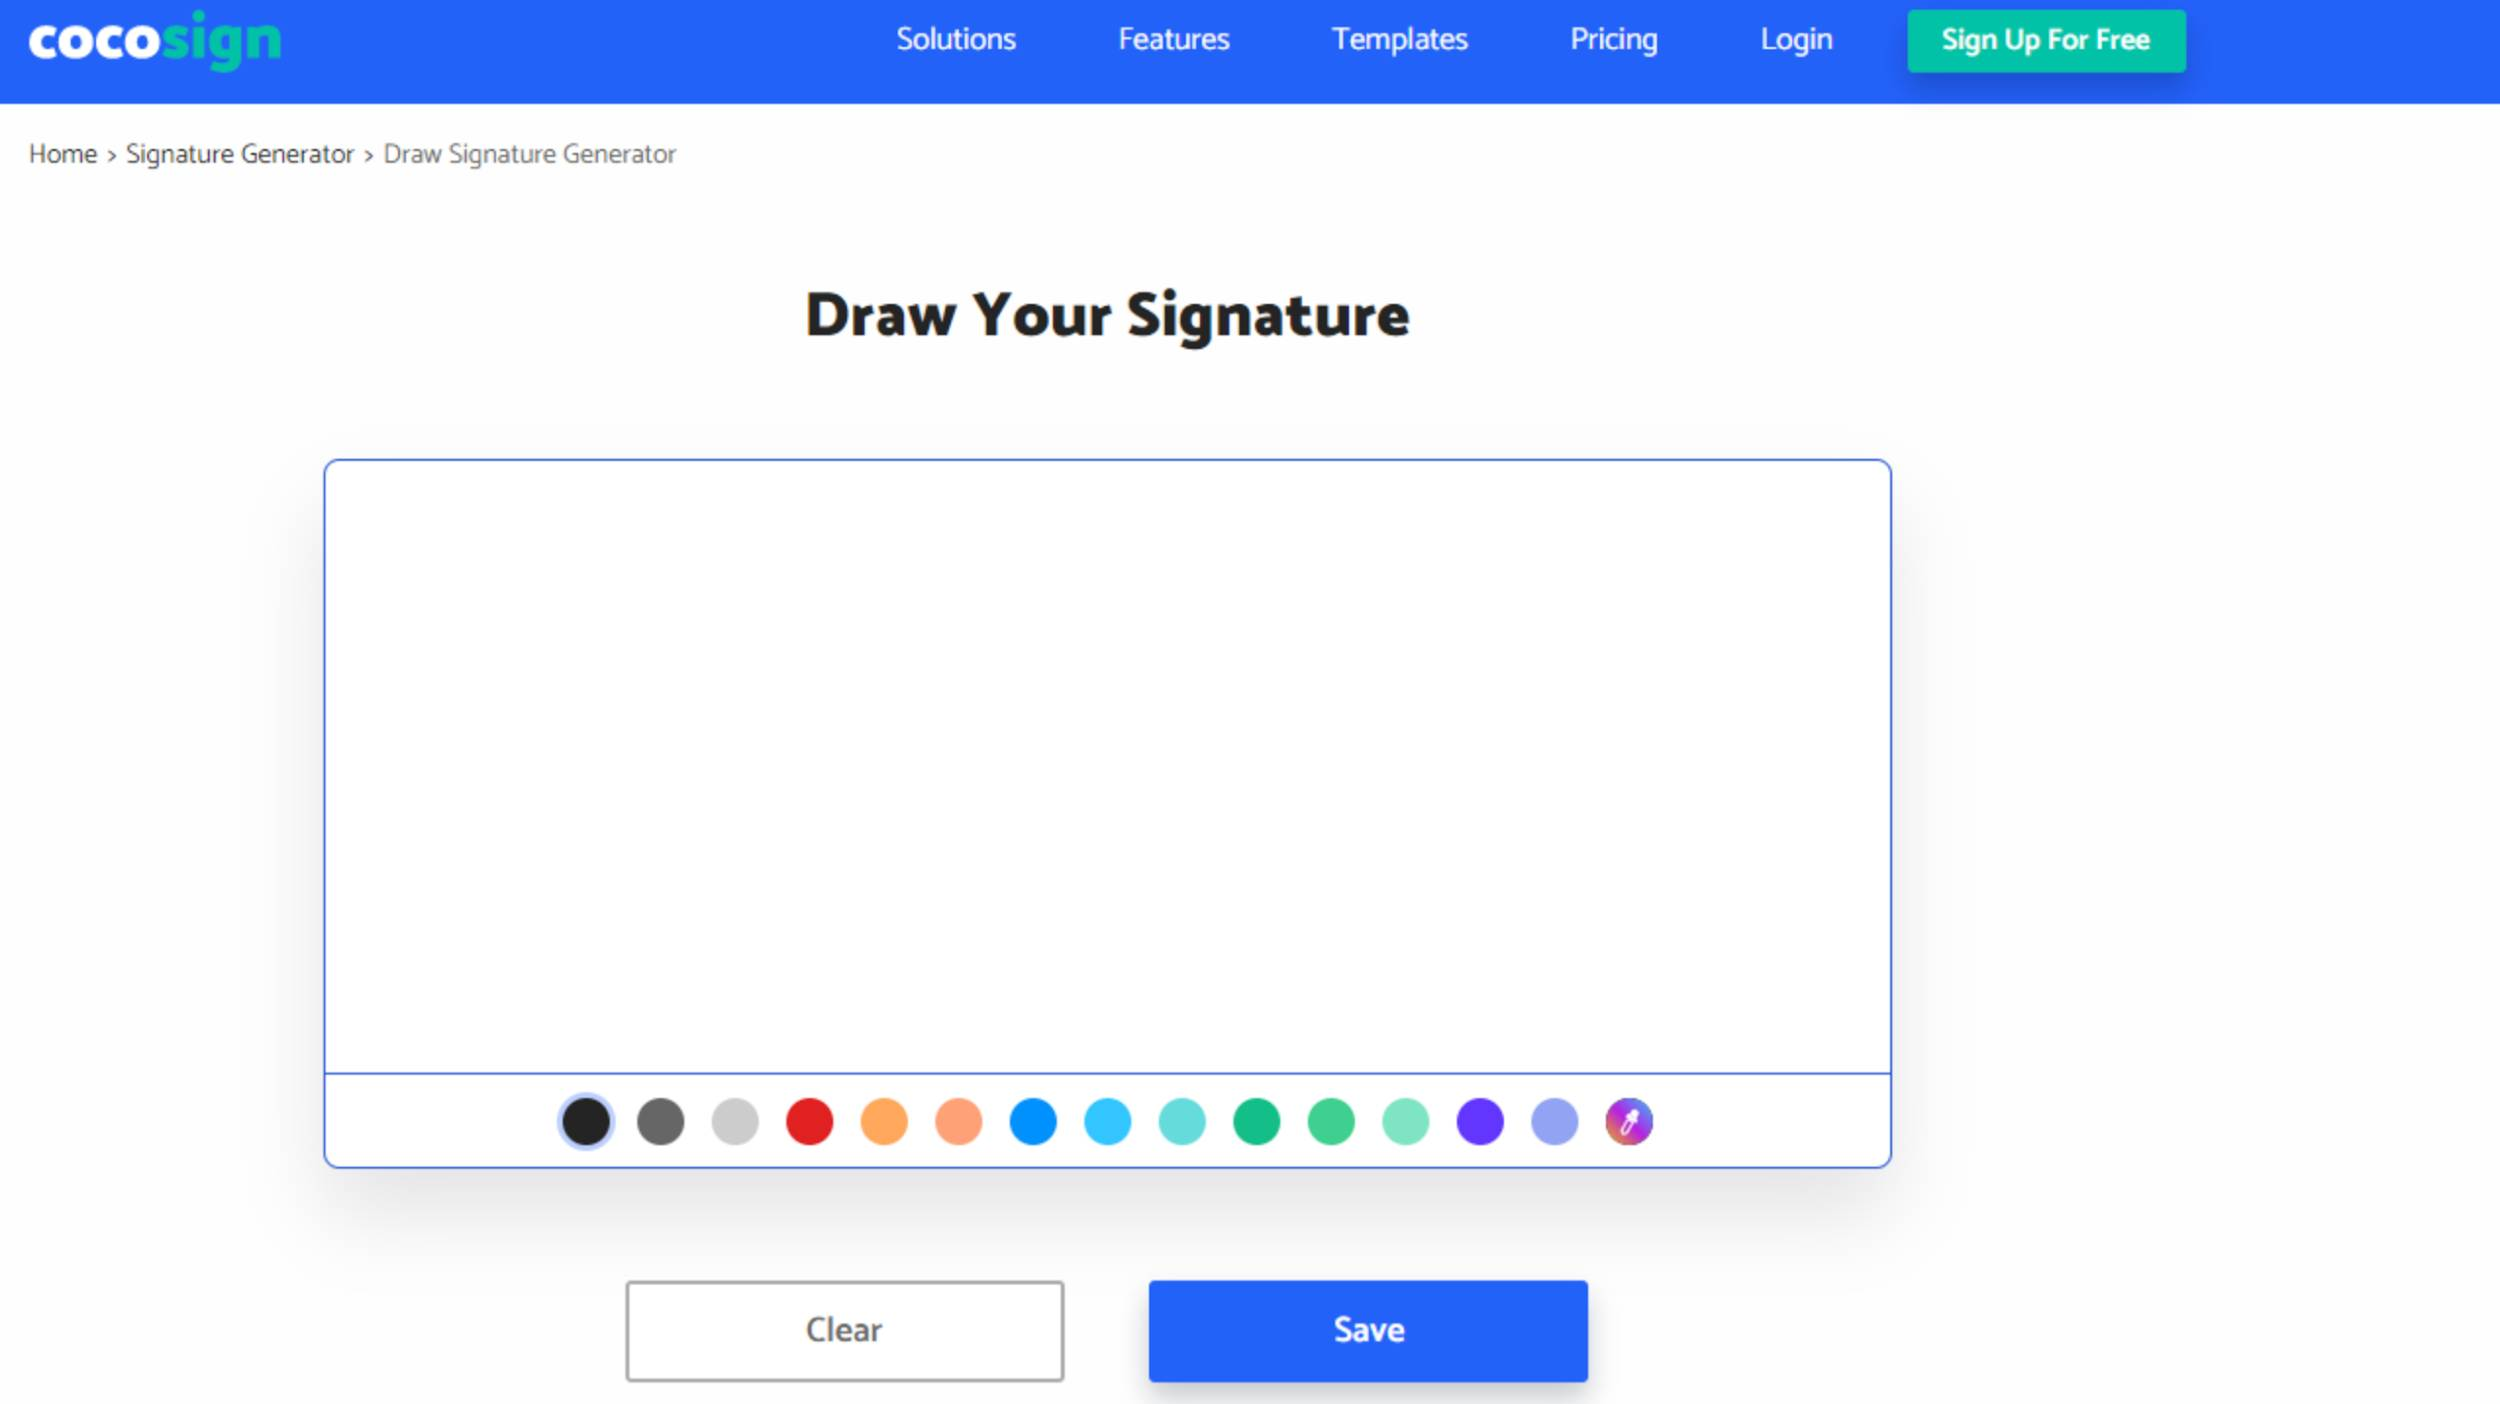 Draw your Signature with this app